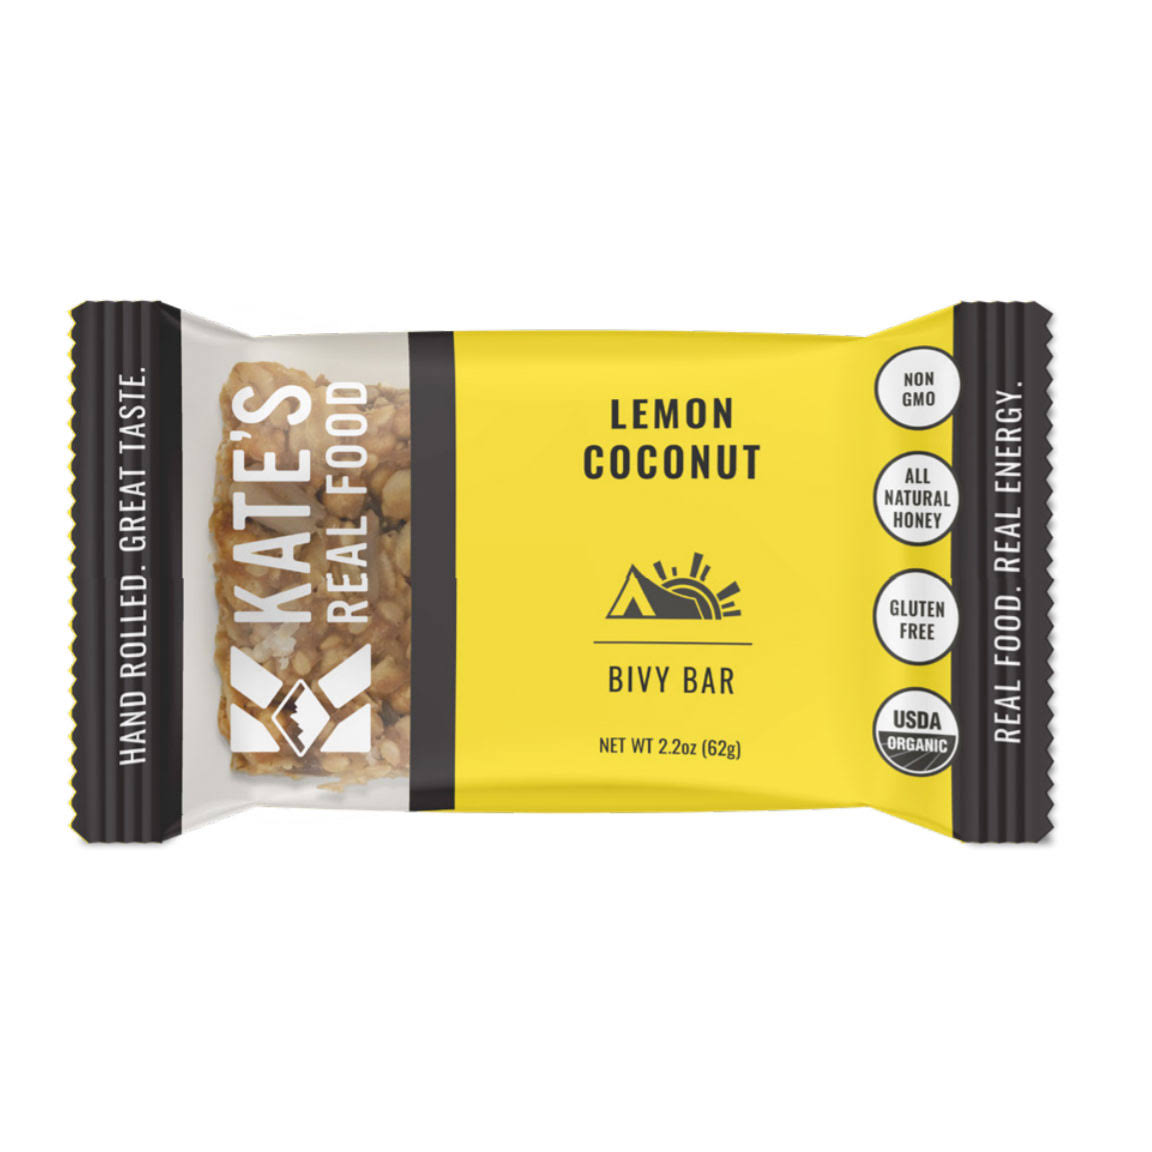 Kate's Real Food Bivy Bar Lemon Coconut